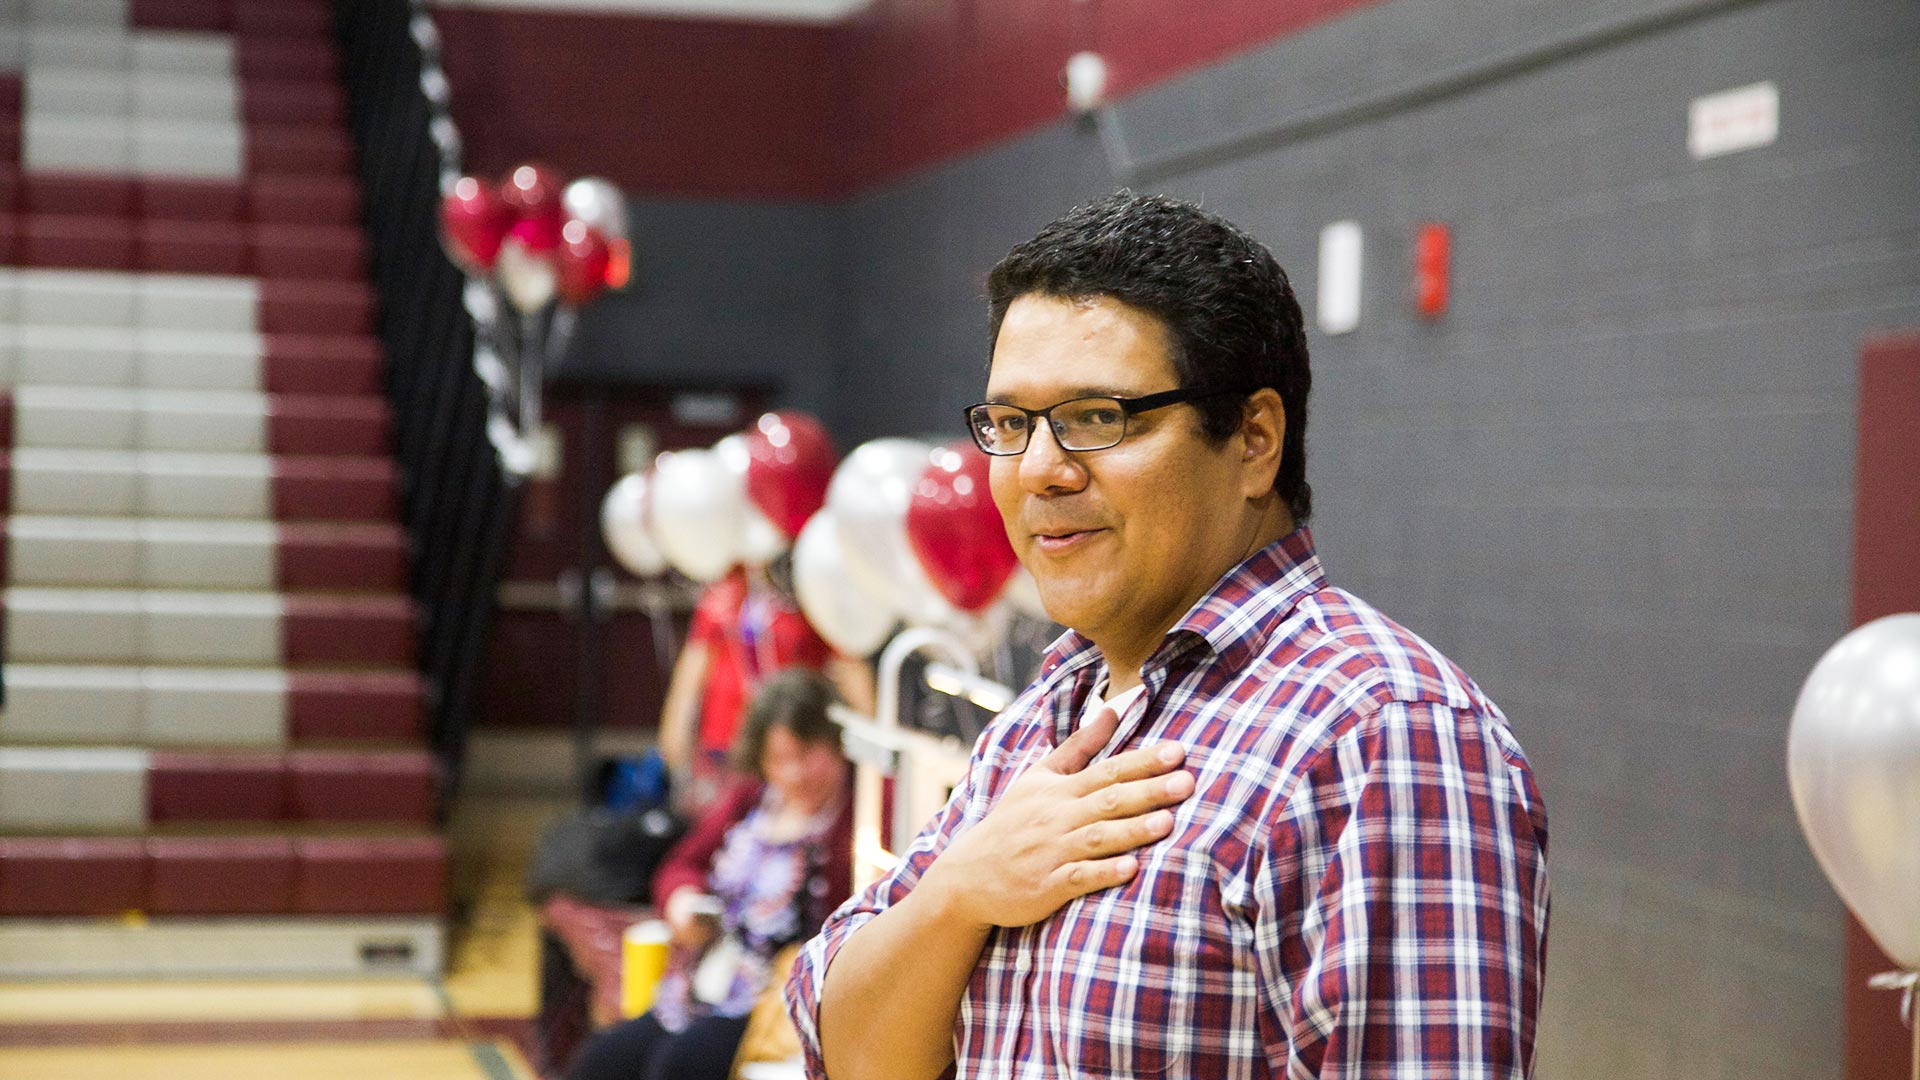 Desert View High School chemistry teacher Jonathan Cadena breathes out following the surprise announcement that he was the recipient of a Milken Educator Award.